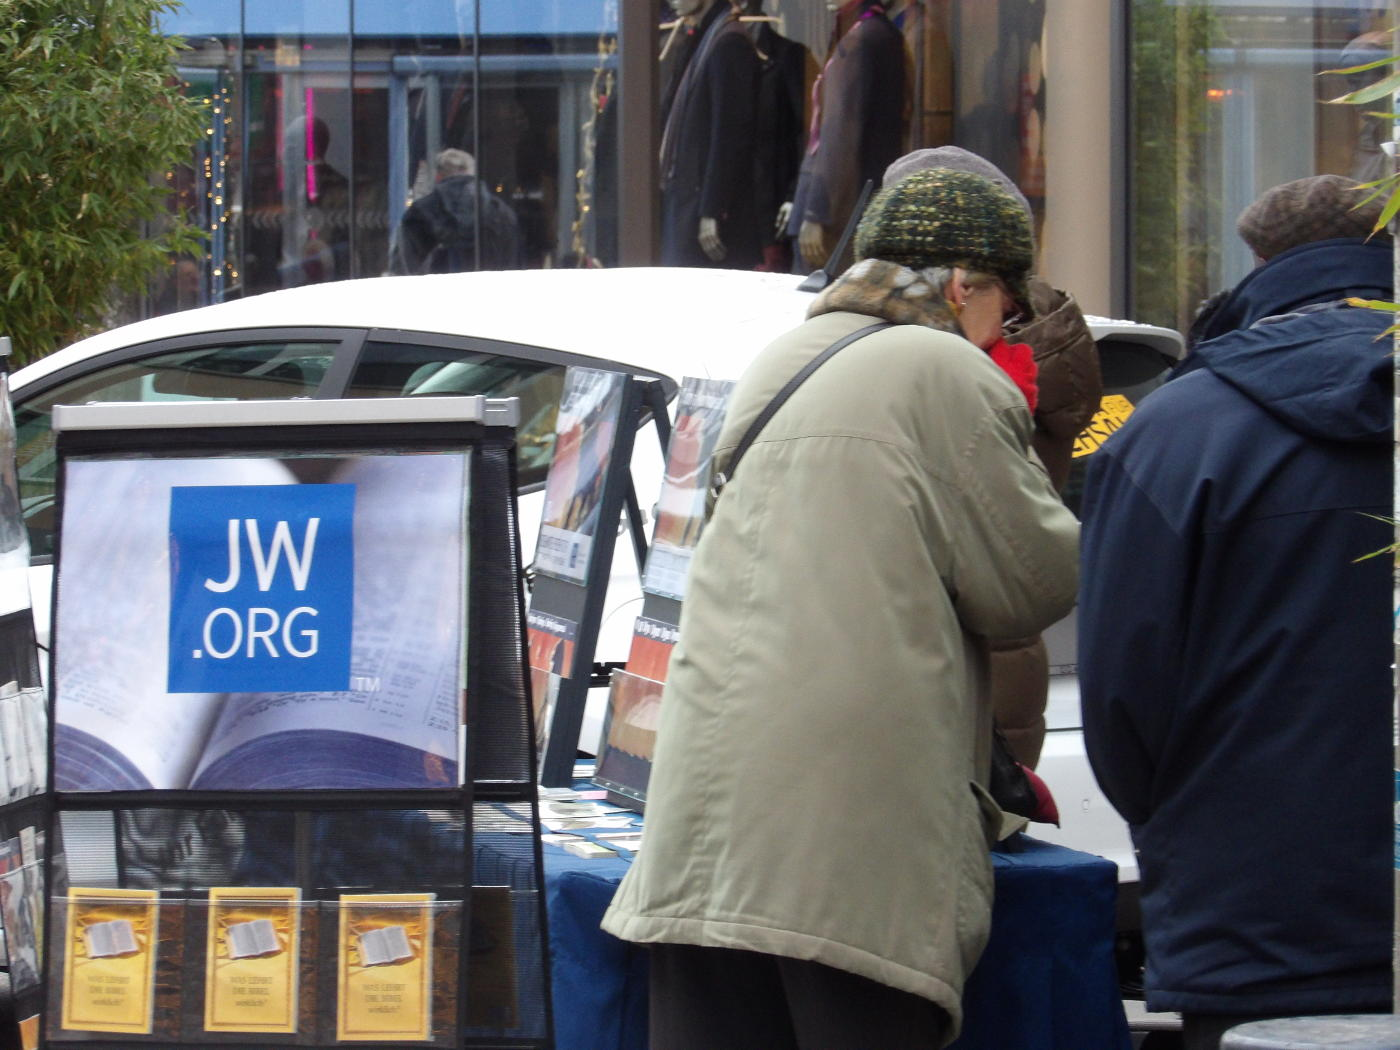 Jehovah's Witnesses Without Insight - No Chance, You Can Talk Better With a Wall